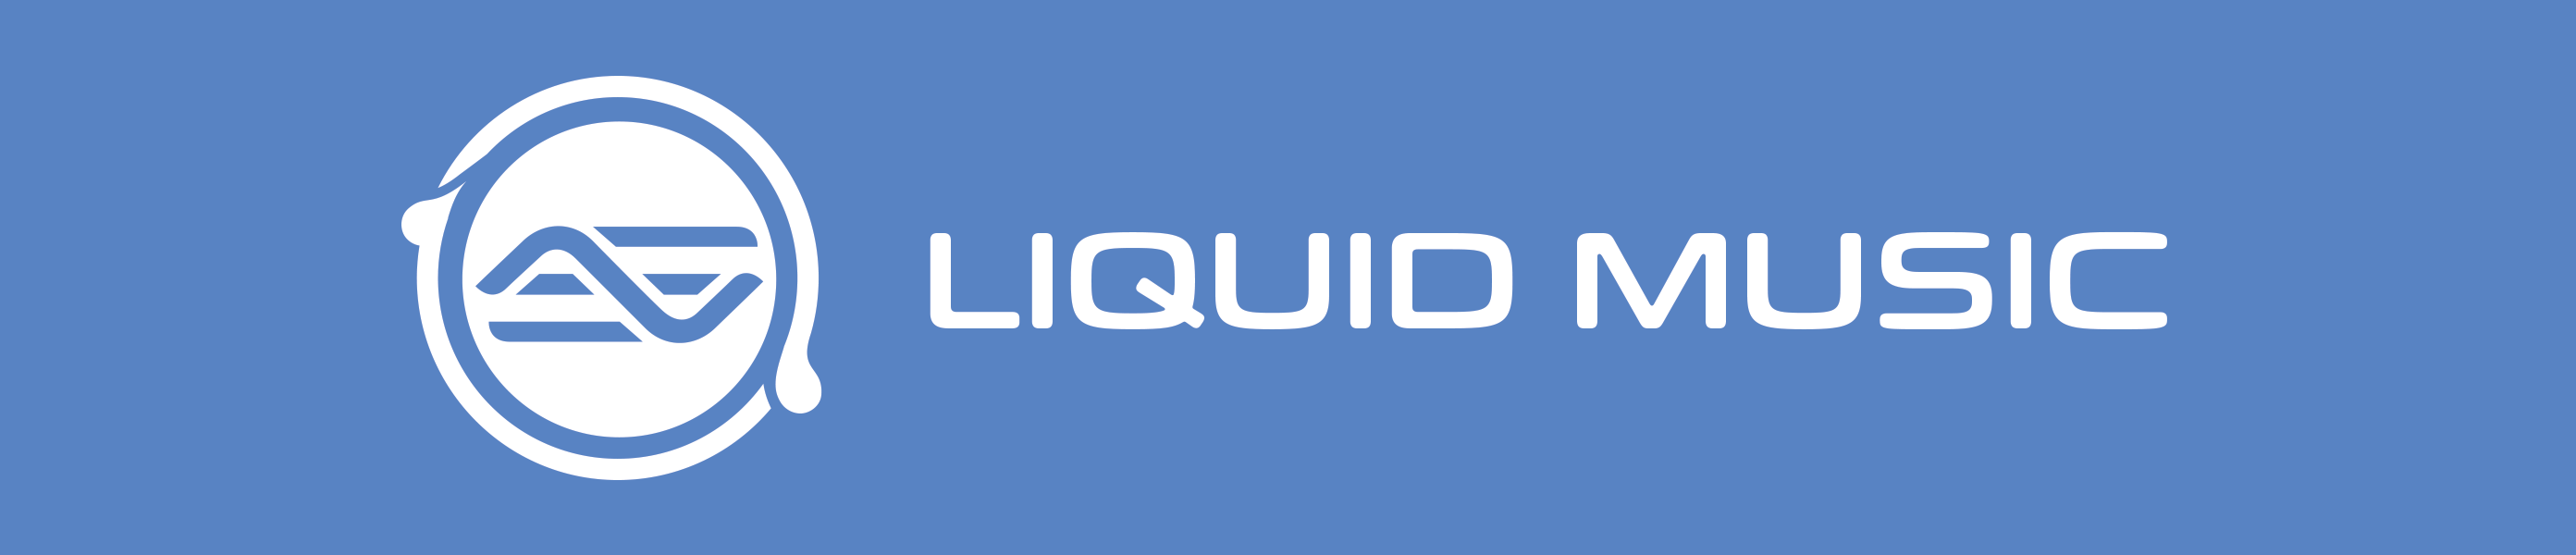 Download Liquid Music